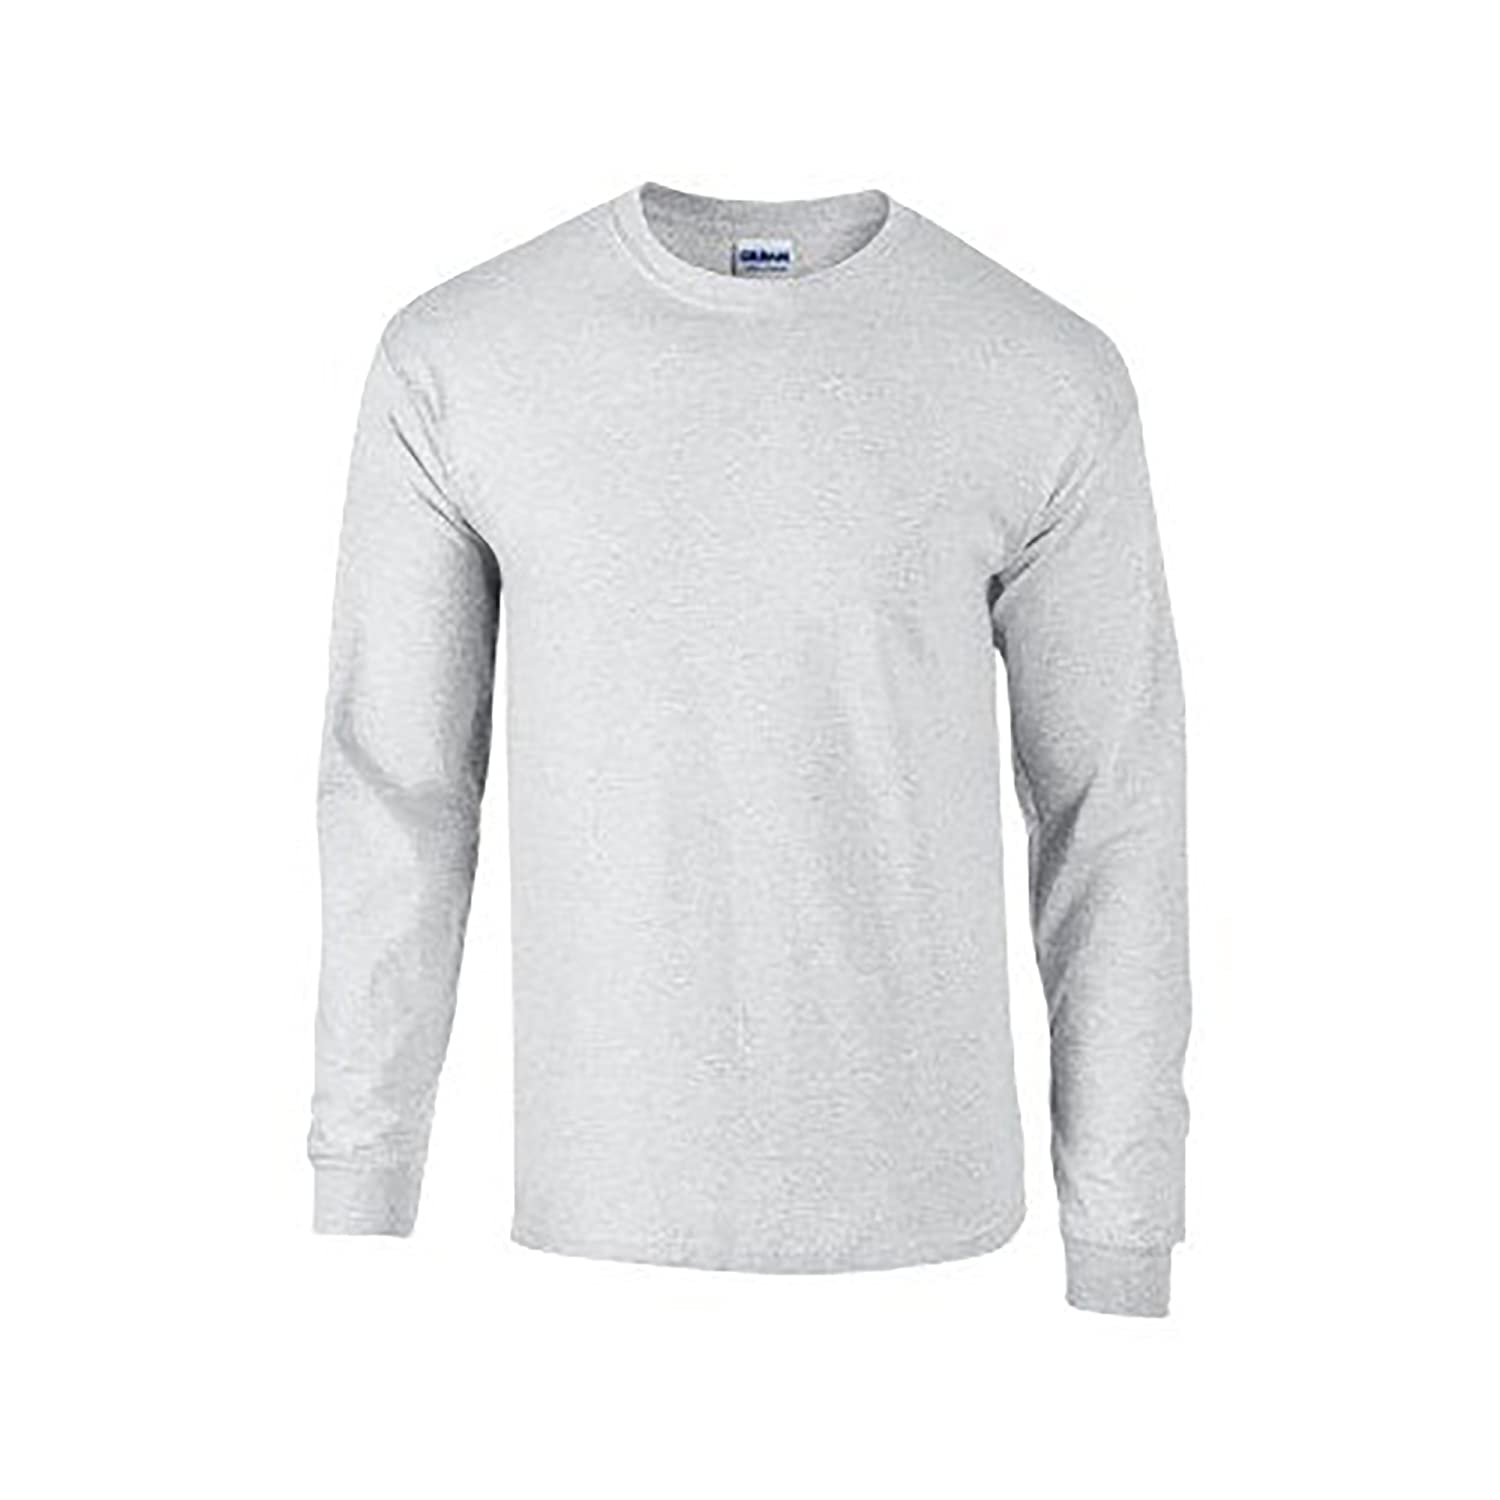 Amazon.com: Gildan Mens Plain Crew Neck Ultra Cotton Long Sleeve T ...